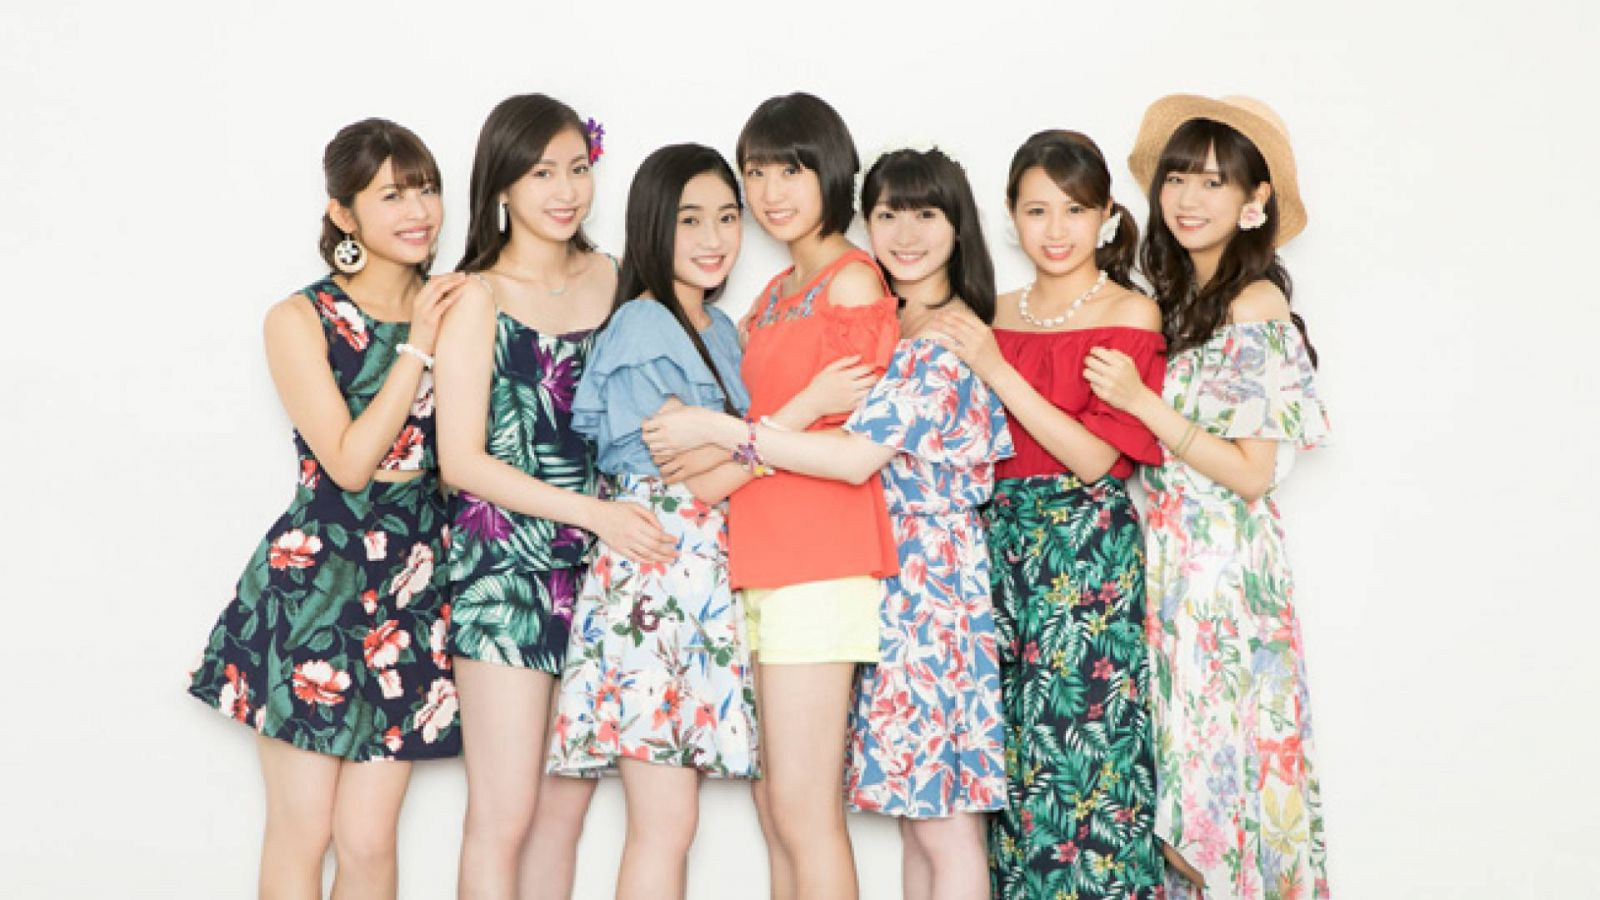 Juice=Juice © UP-FRONT PROMOTION Co., Ltd.